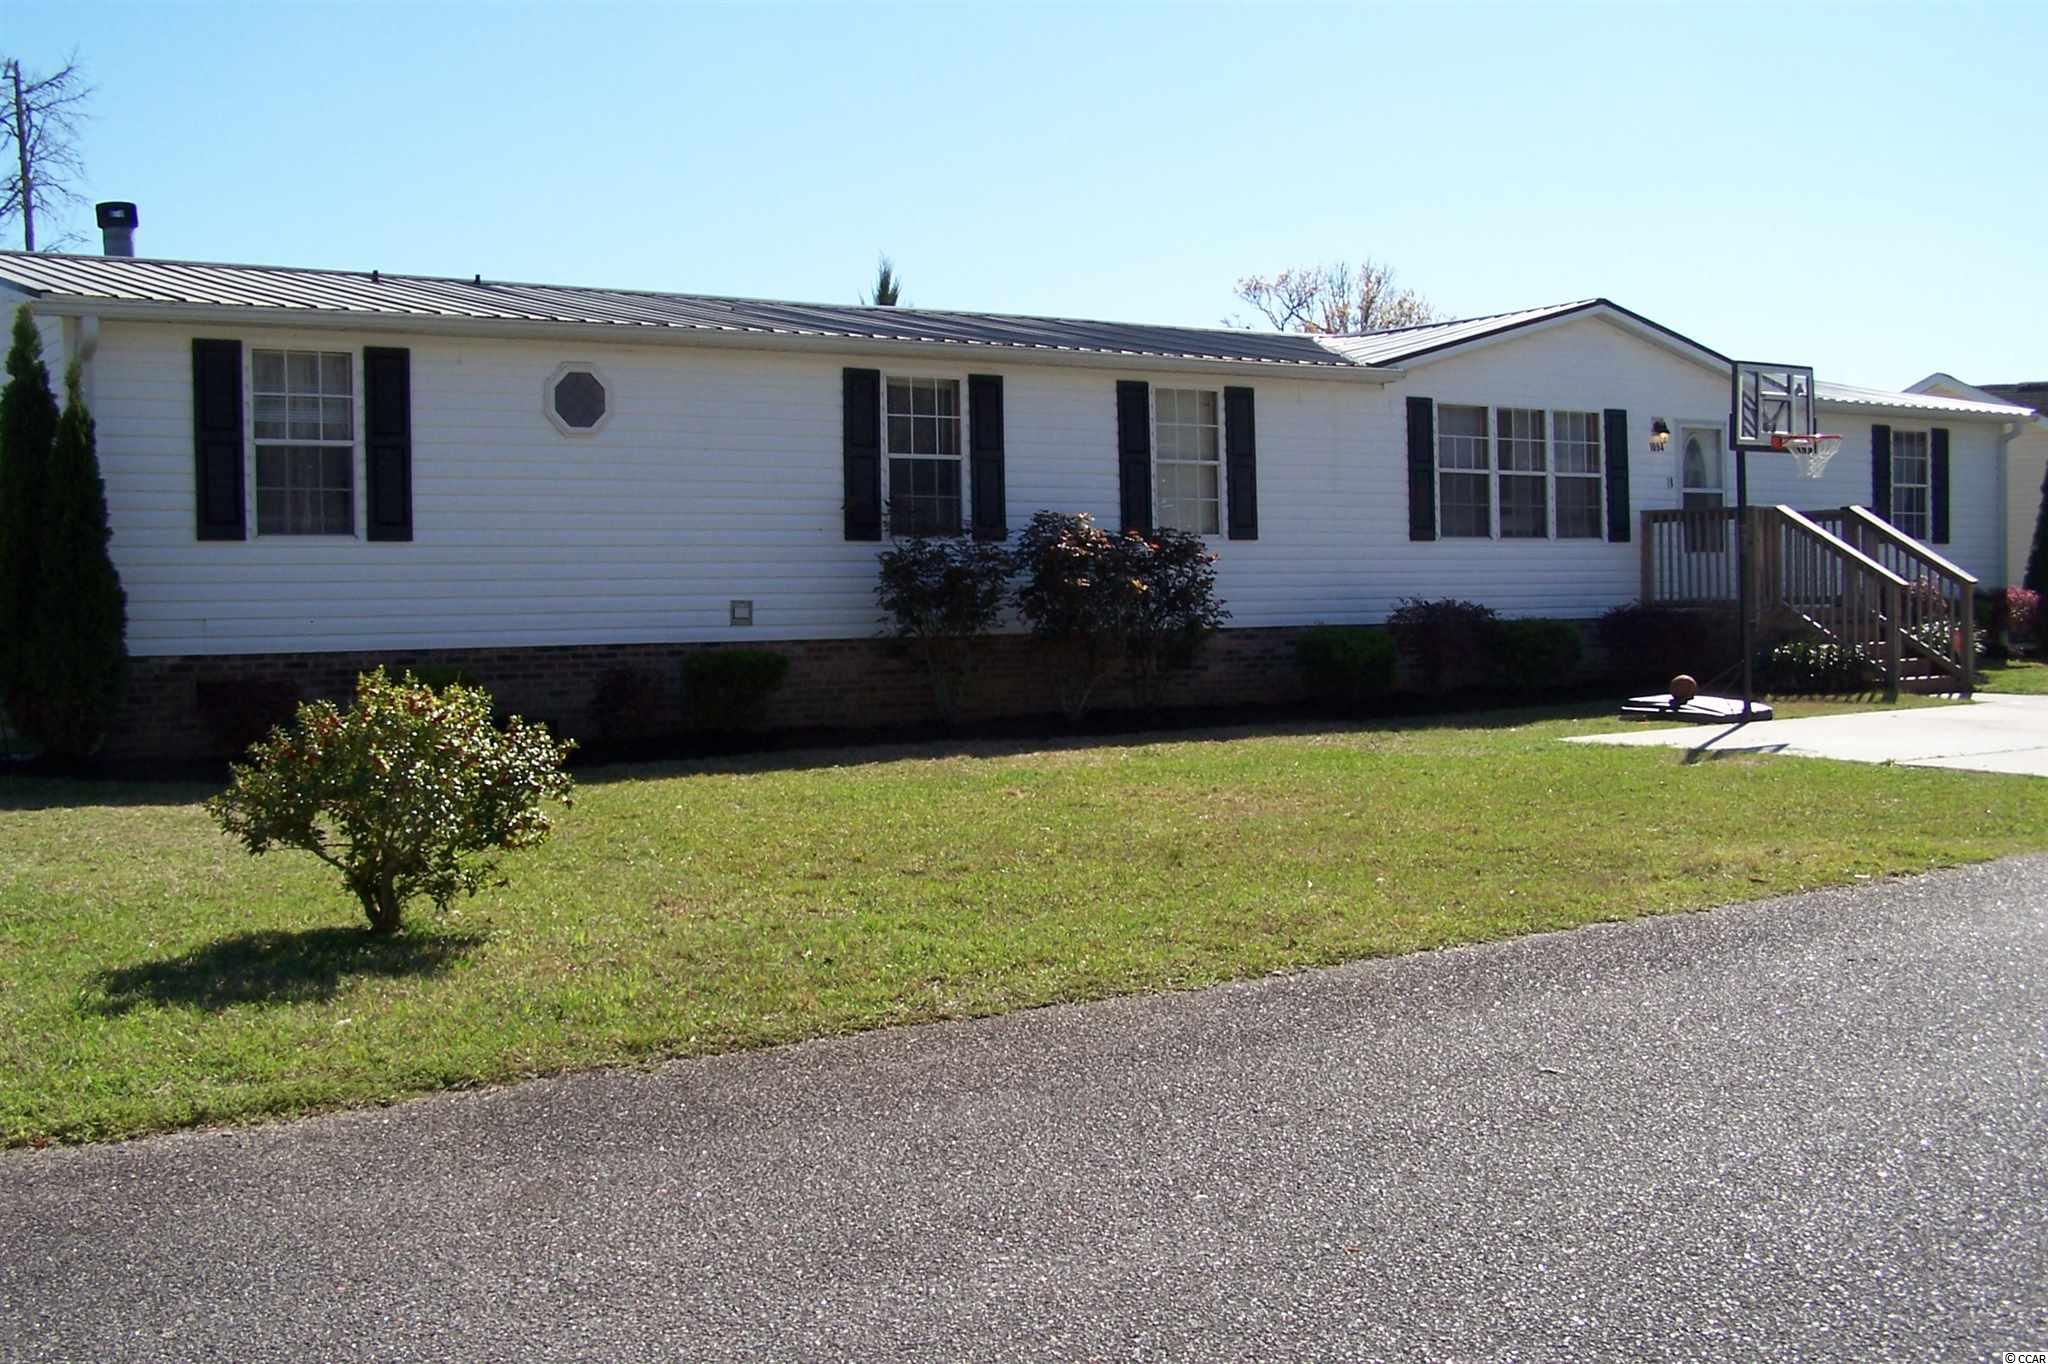 Only home in Weslin Creek active at the moment!. This large manufactured home on its own land is perfect for your larger family. This home also has a room just off the Master suite ( 13 x 9)  that can be a master sitting area, office or with a wardrobe added, a 5th bedroom! Master bath boasts a jetted tub and separate shower. A living room and family room with a wood burning fire place give you lots of living space.  Stainless steel kitchen appliances even features a double oven and lots of kitchen countertops. Refrigerator is new. Fenced in Backyard is nice size with a 8 x 10 shed and a large deck off back door.  Weslin Creek is just minutes from Surfside Beach, shopping and dining.